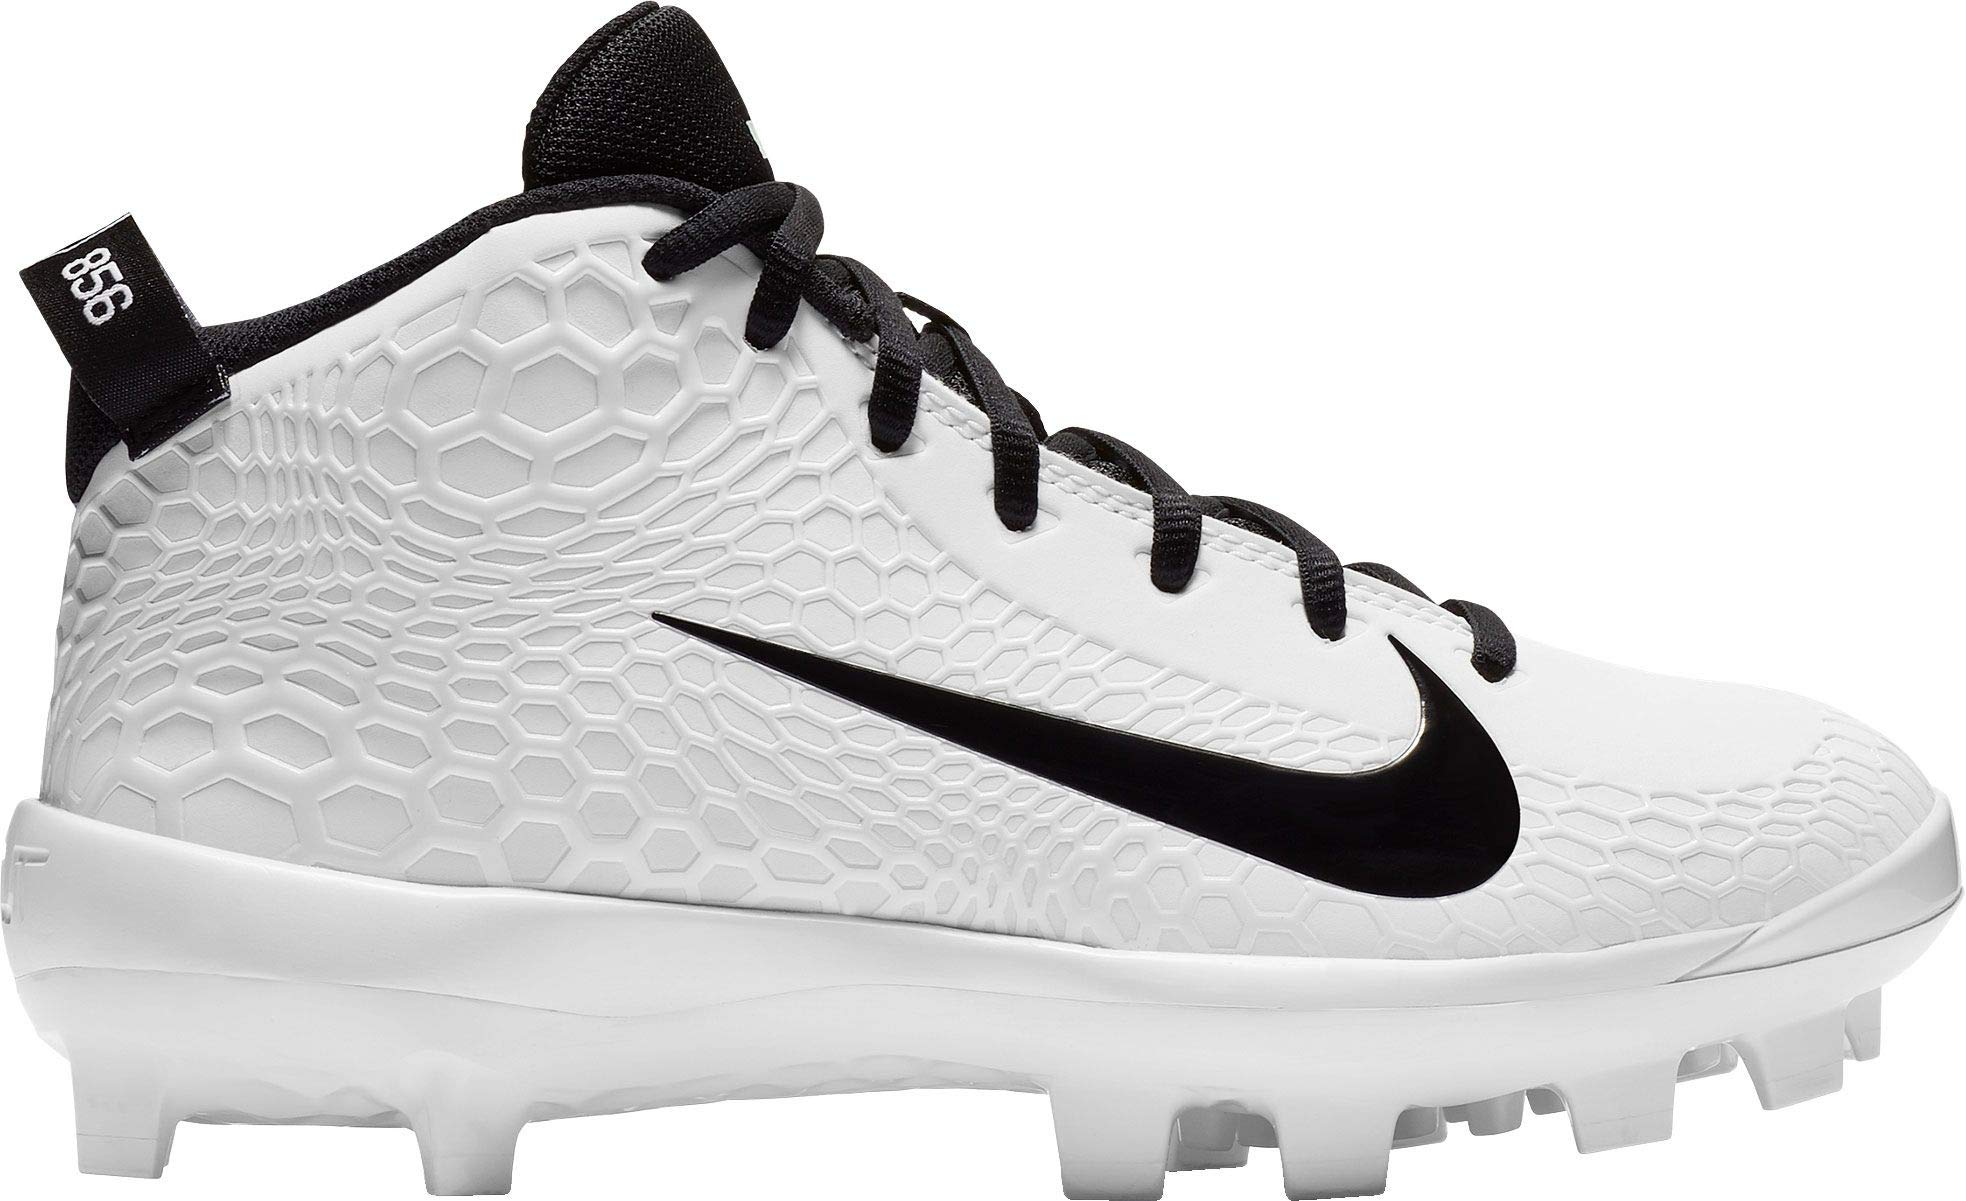 Nike Kids Force Trout 5 Pro MCS Baseball Cleat White/Black/Pure Platinum Size 1 M US by Nike